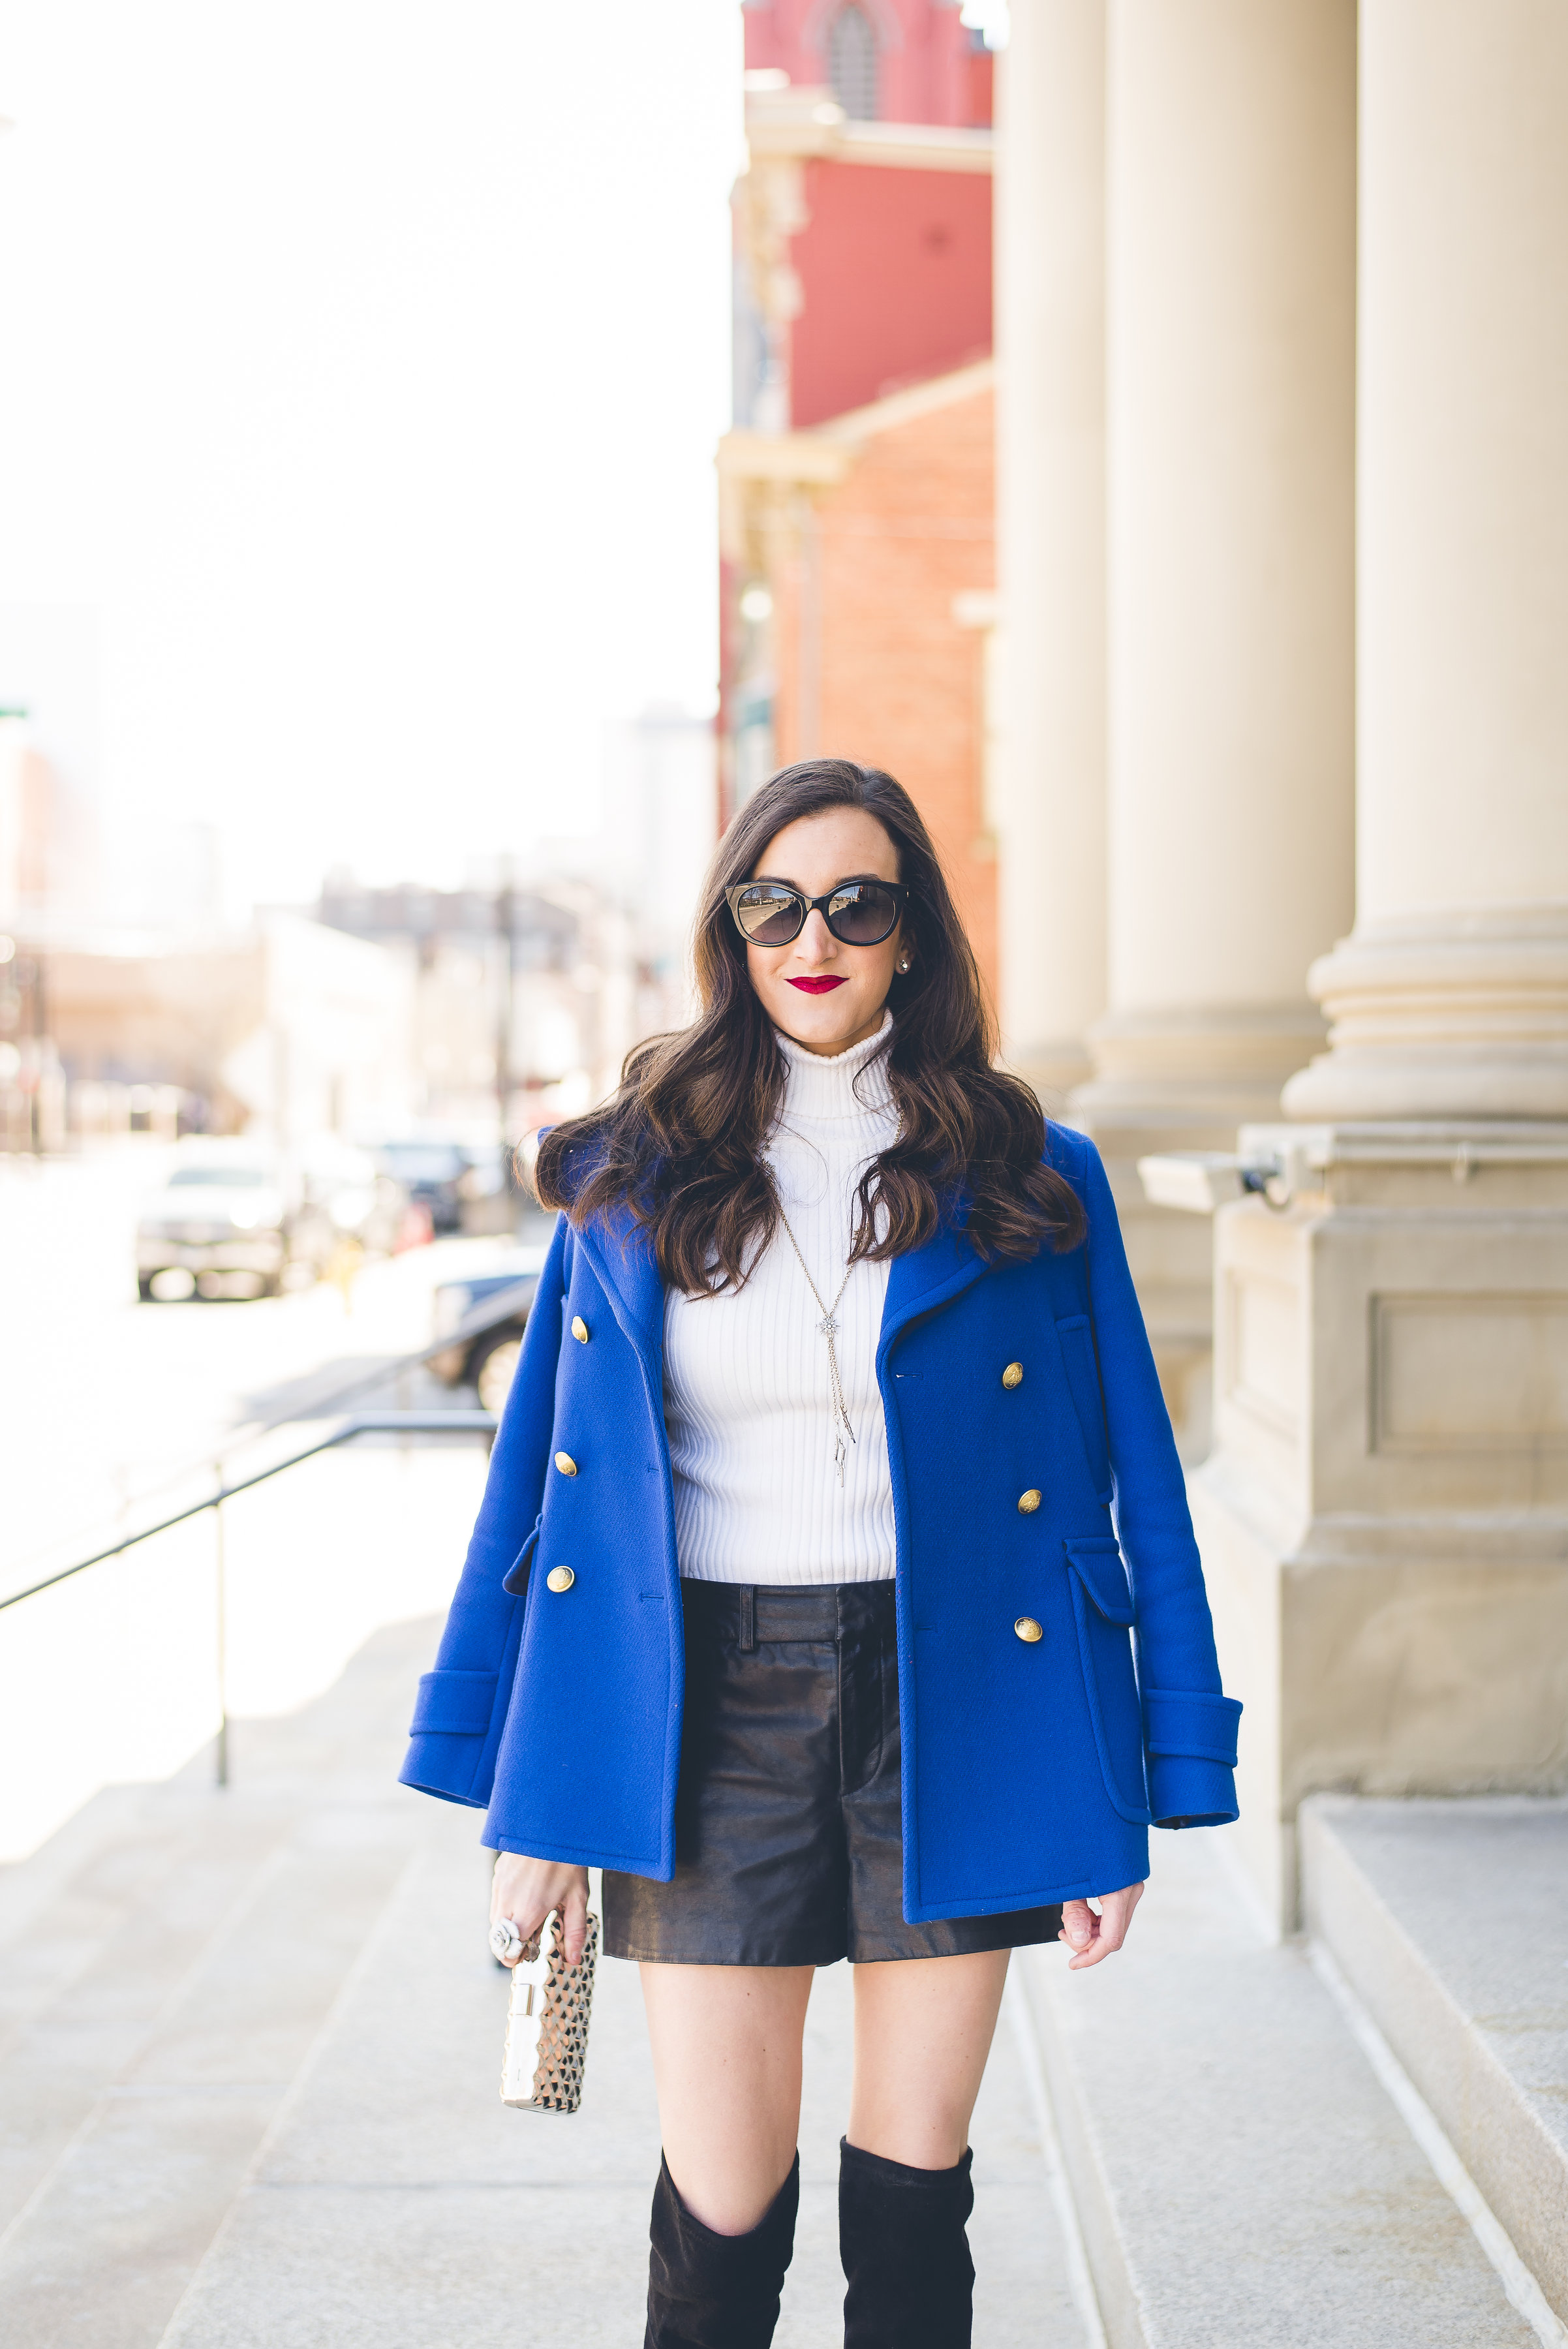 J.Crew Blue Peacoat that is black and blue